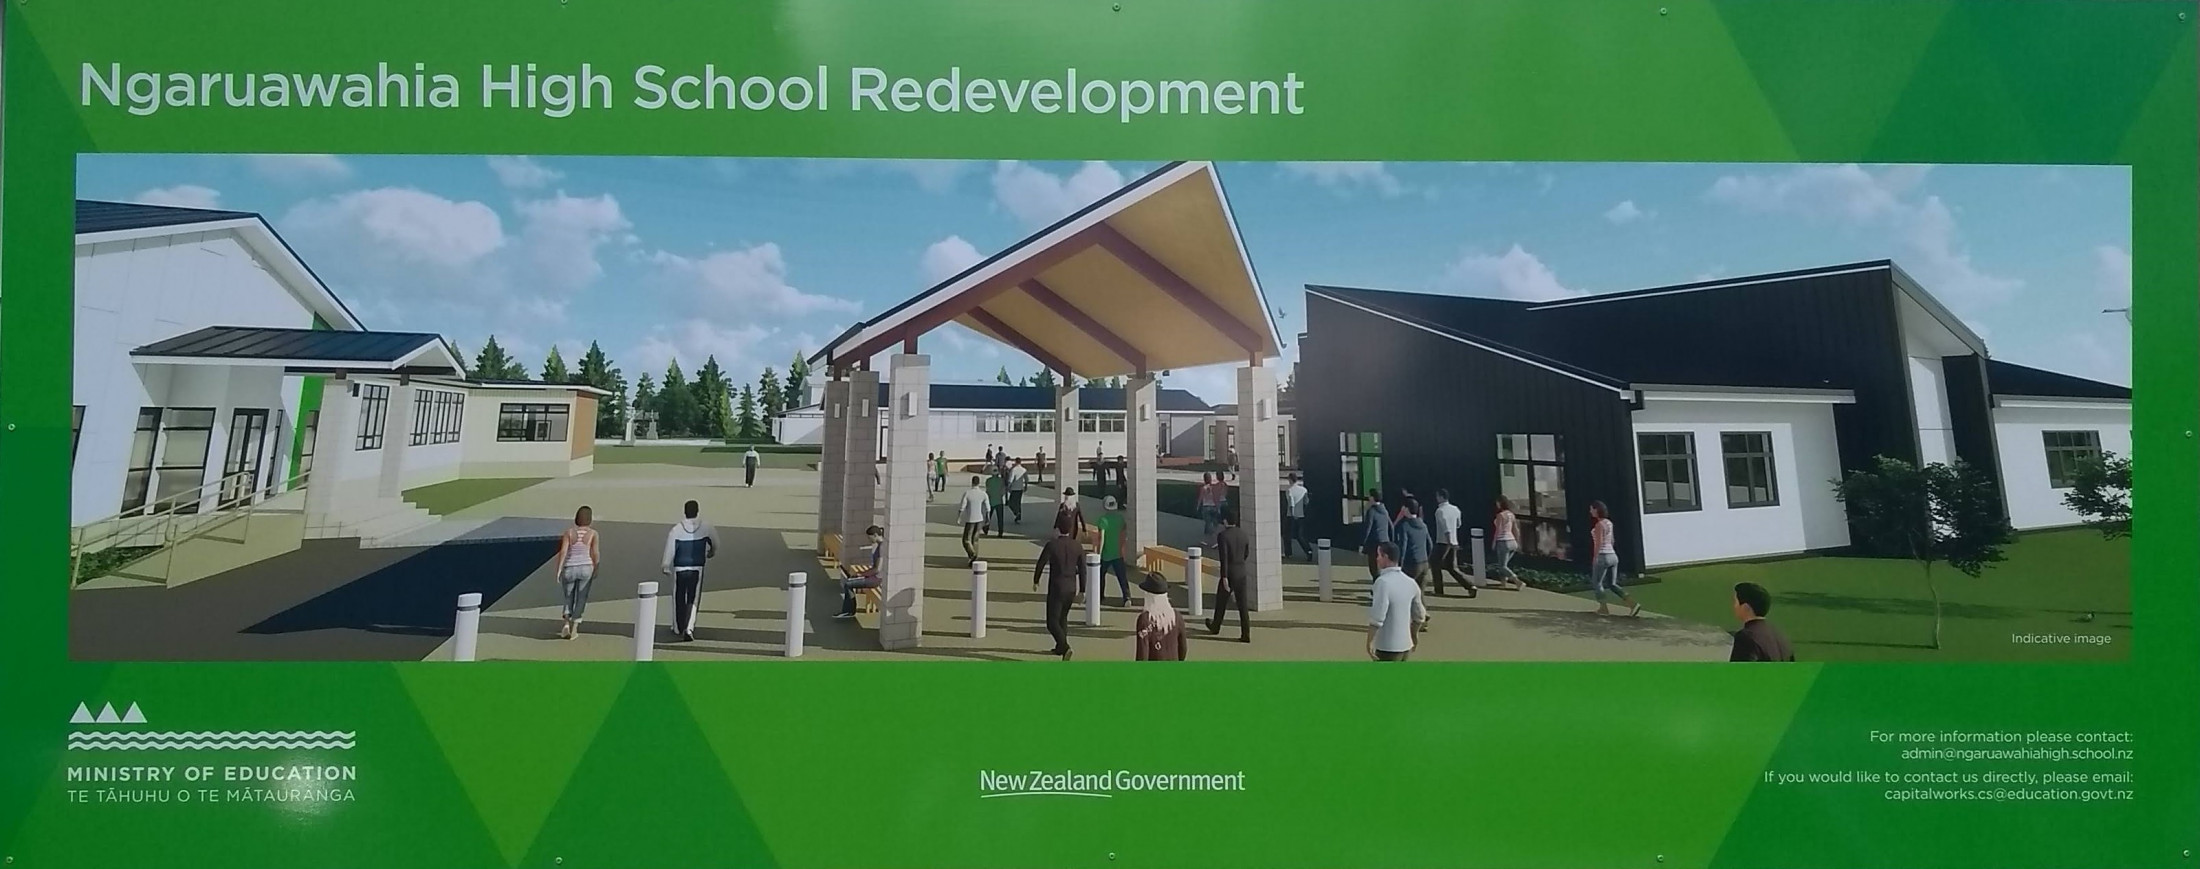 Ngaruawahia Redevelopment Photo Board